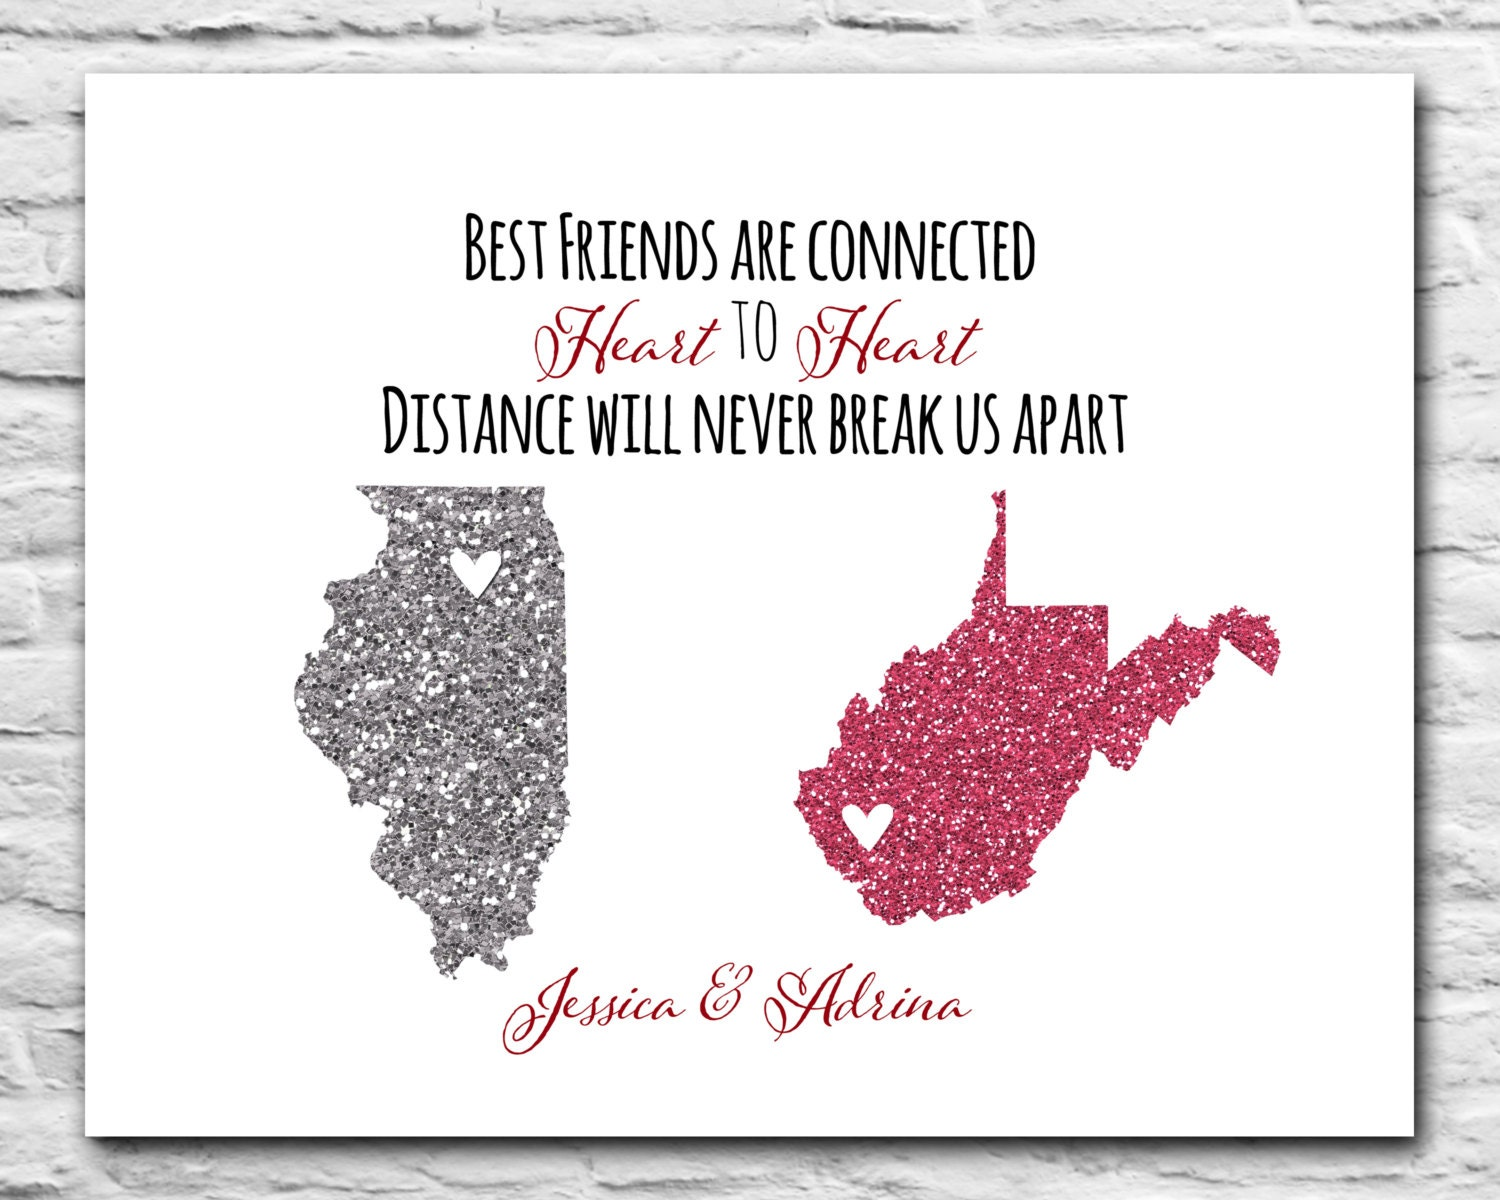 Quotes About Friendship And Distance Best Friends Gift Long Distance Friendship 8X10